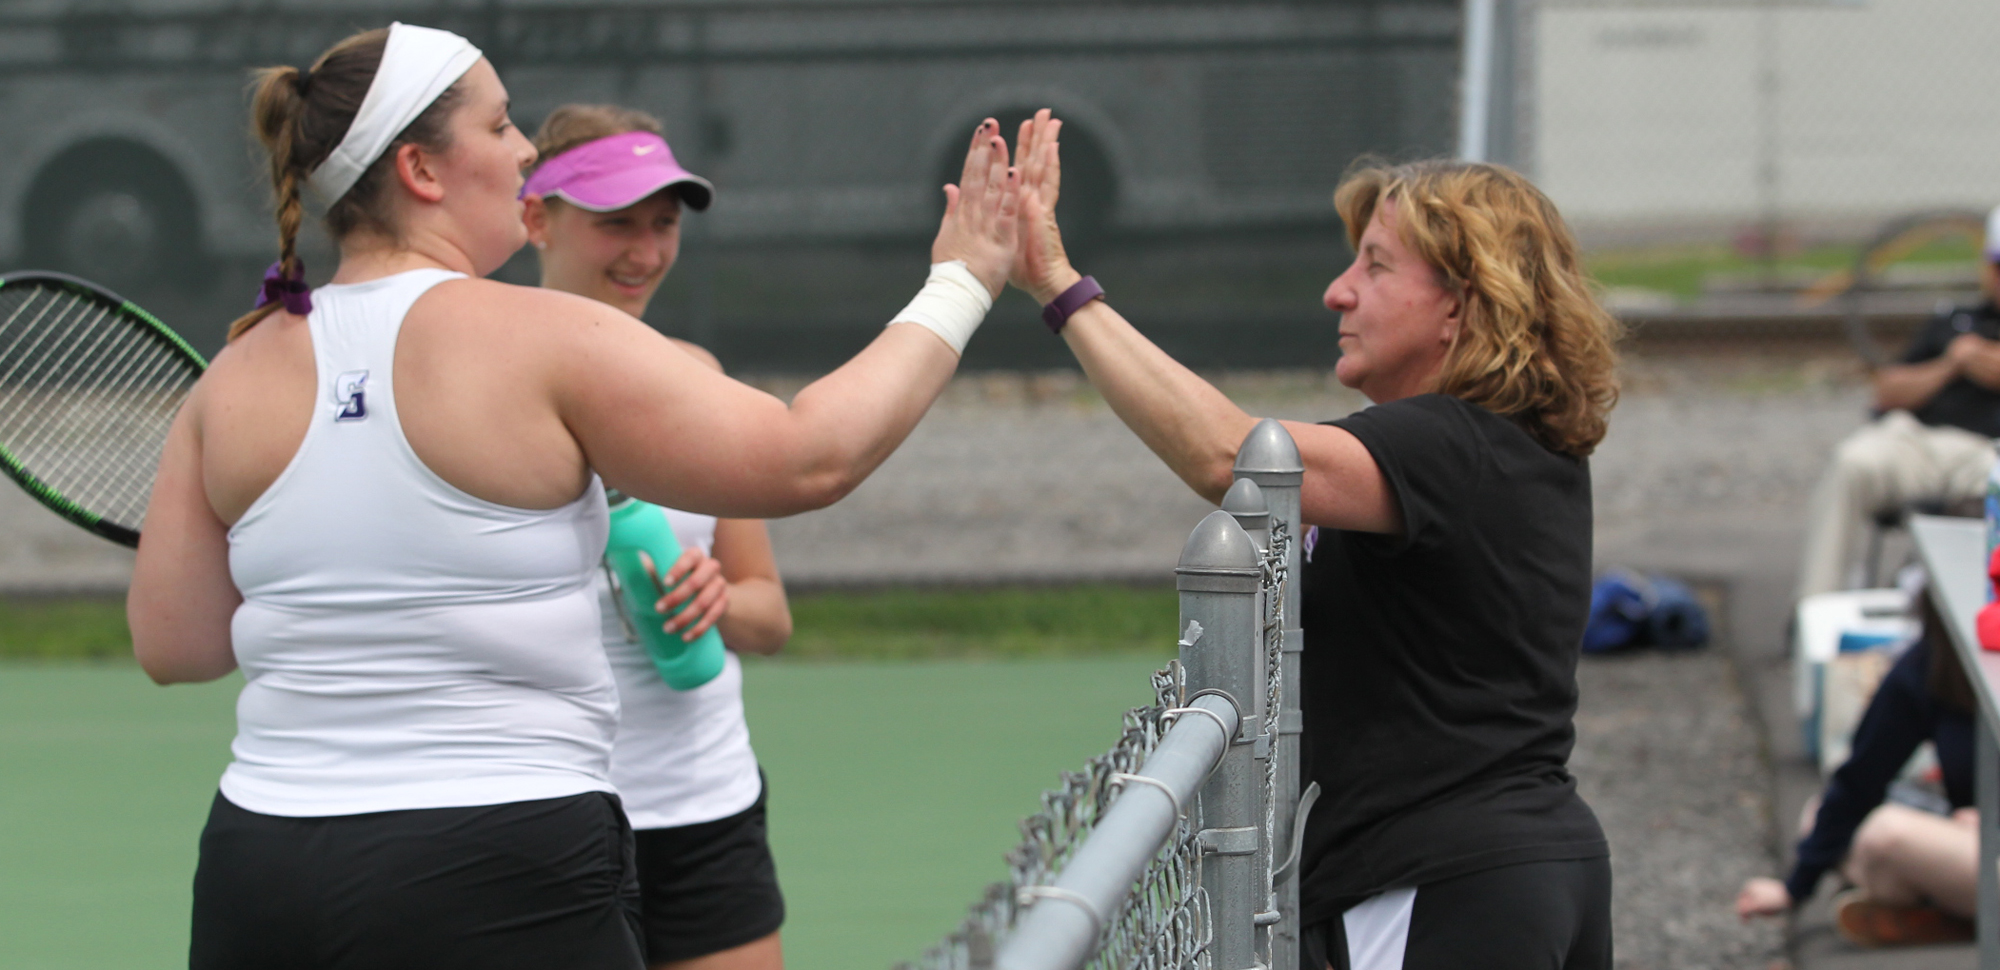 University of Scranton women's tennis head coach Janice Winslow was named the USTA Eastern Pennsylvania District College Coach of the Year recently and will receive the award at a banquet next month.